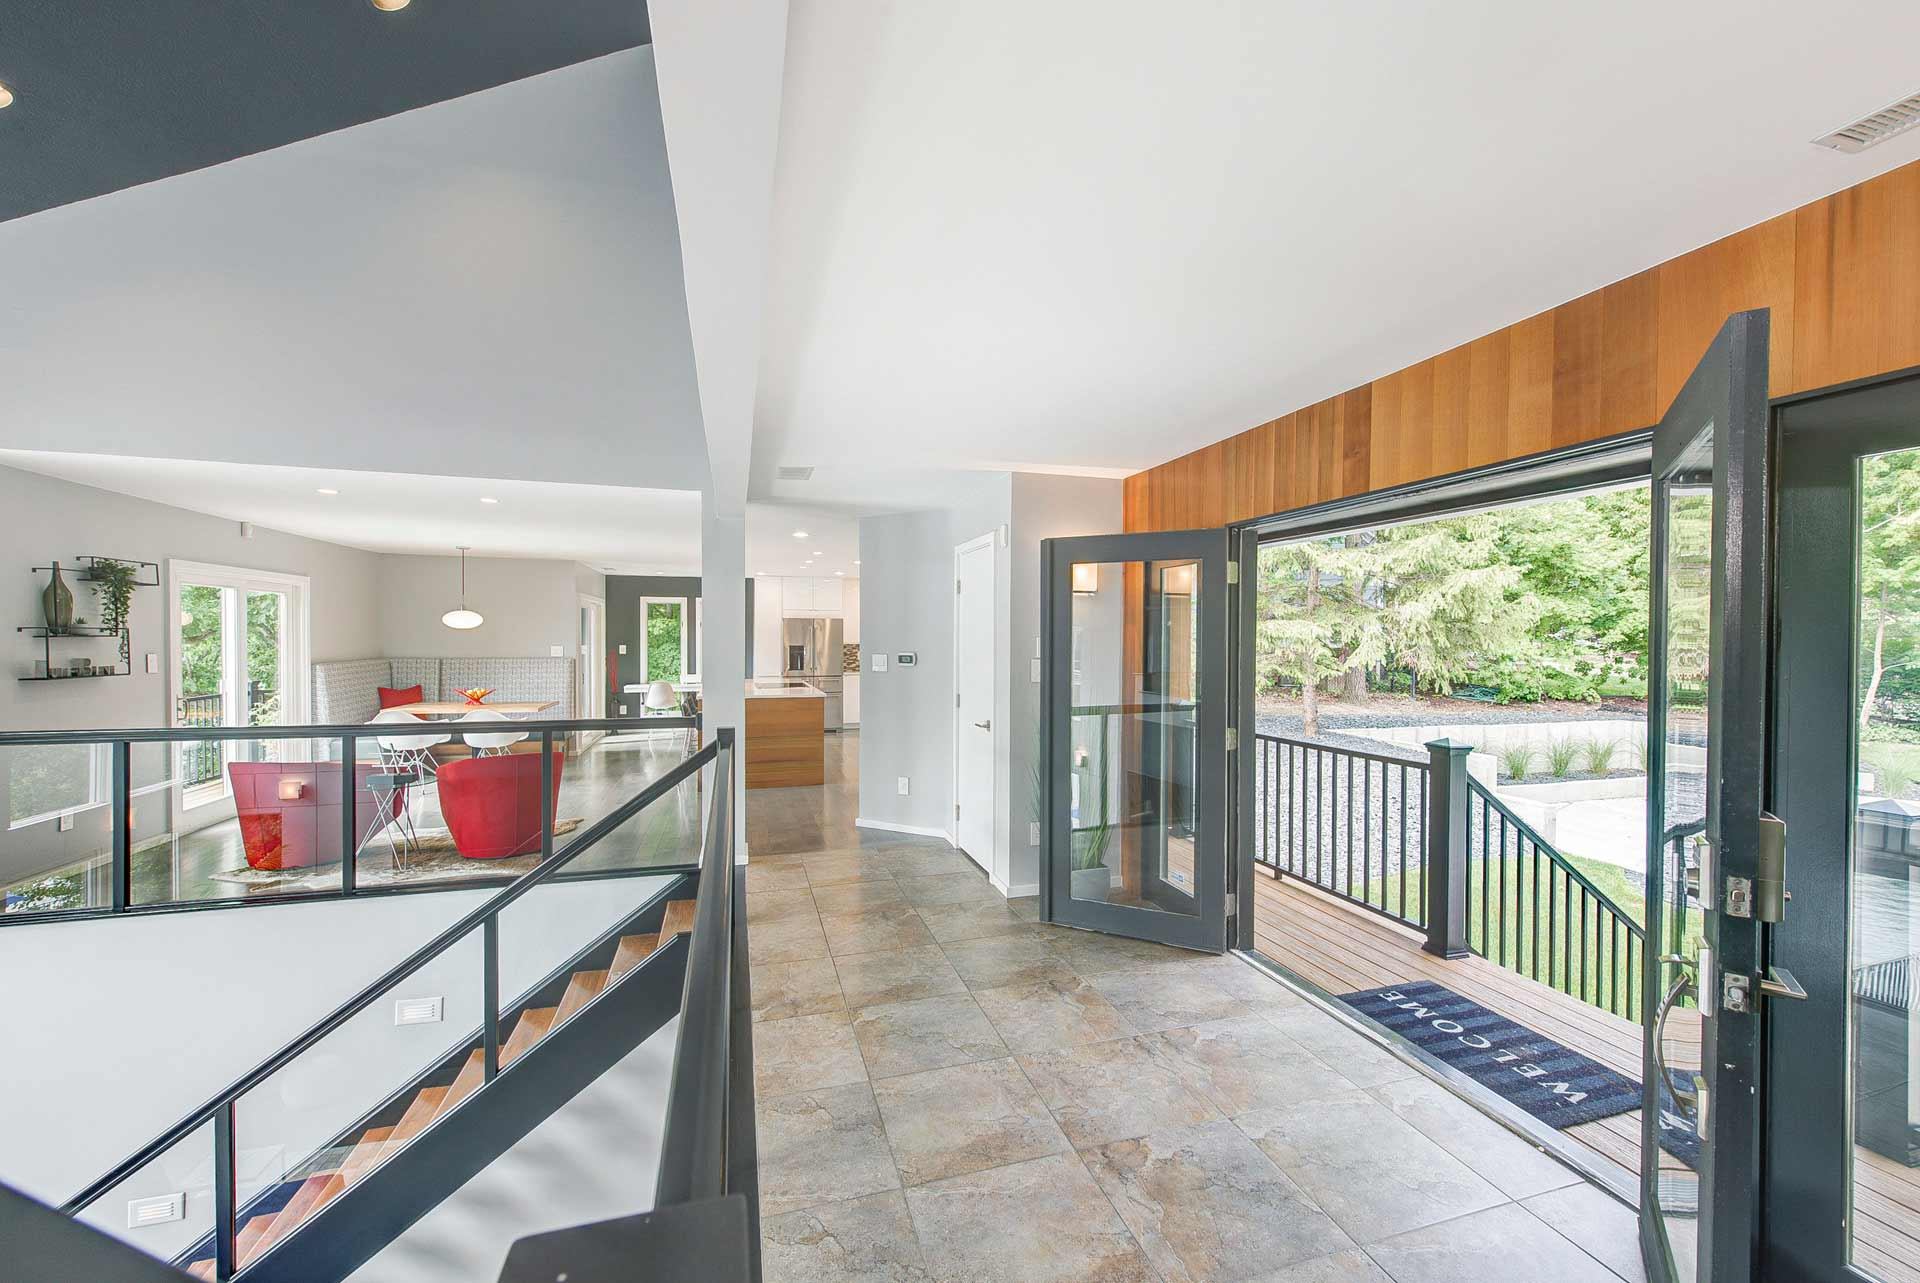 Enhanced main entry overlooks vaulted living space below and expanded kitchen + dining space beyond - Reef Court Light Renovation - Geist Reservoir - Indianapolis, IN - Photo by Structured Photography